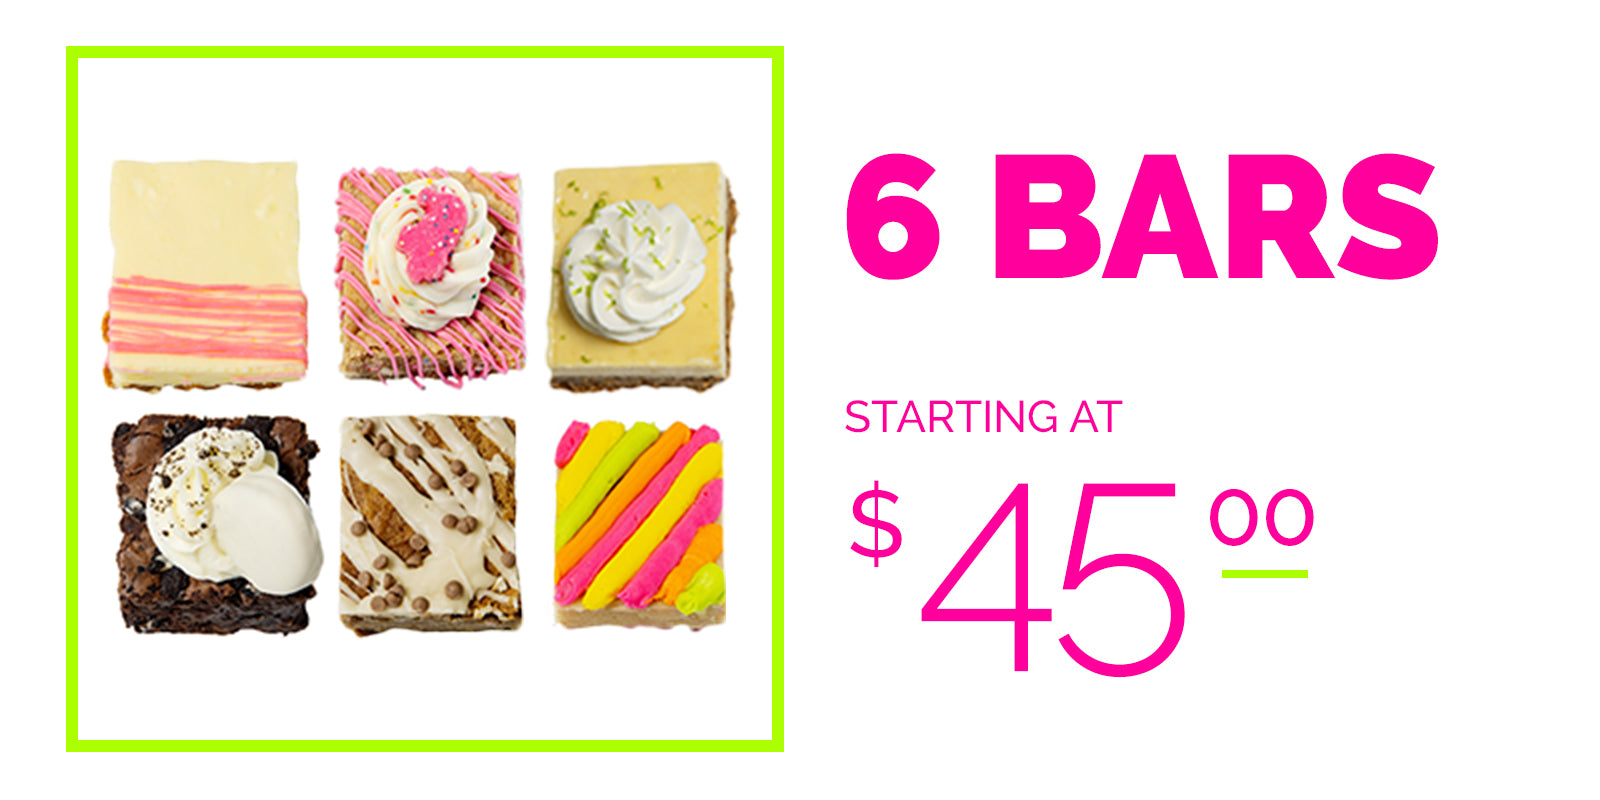 build a collection 6 bars starting at $45